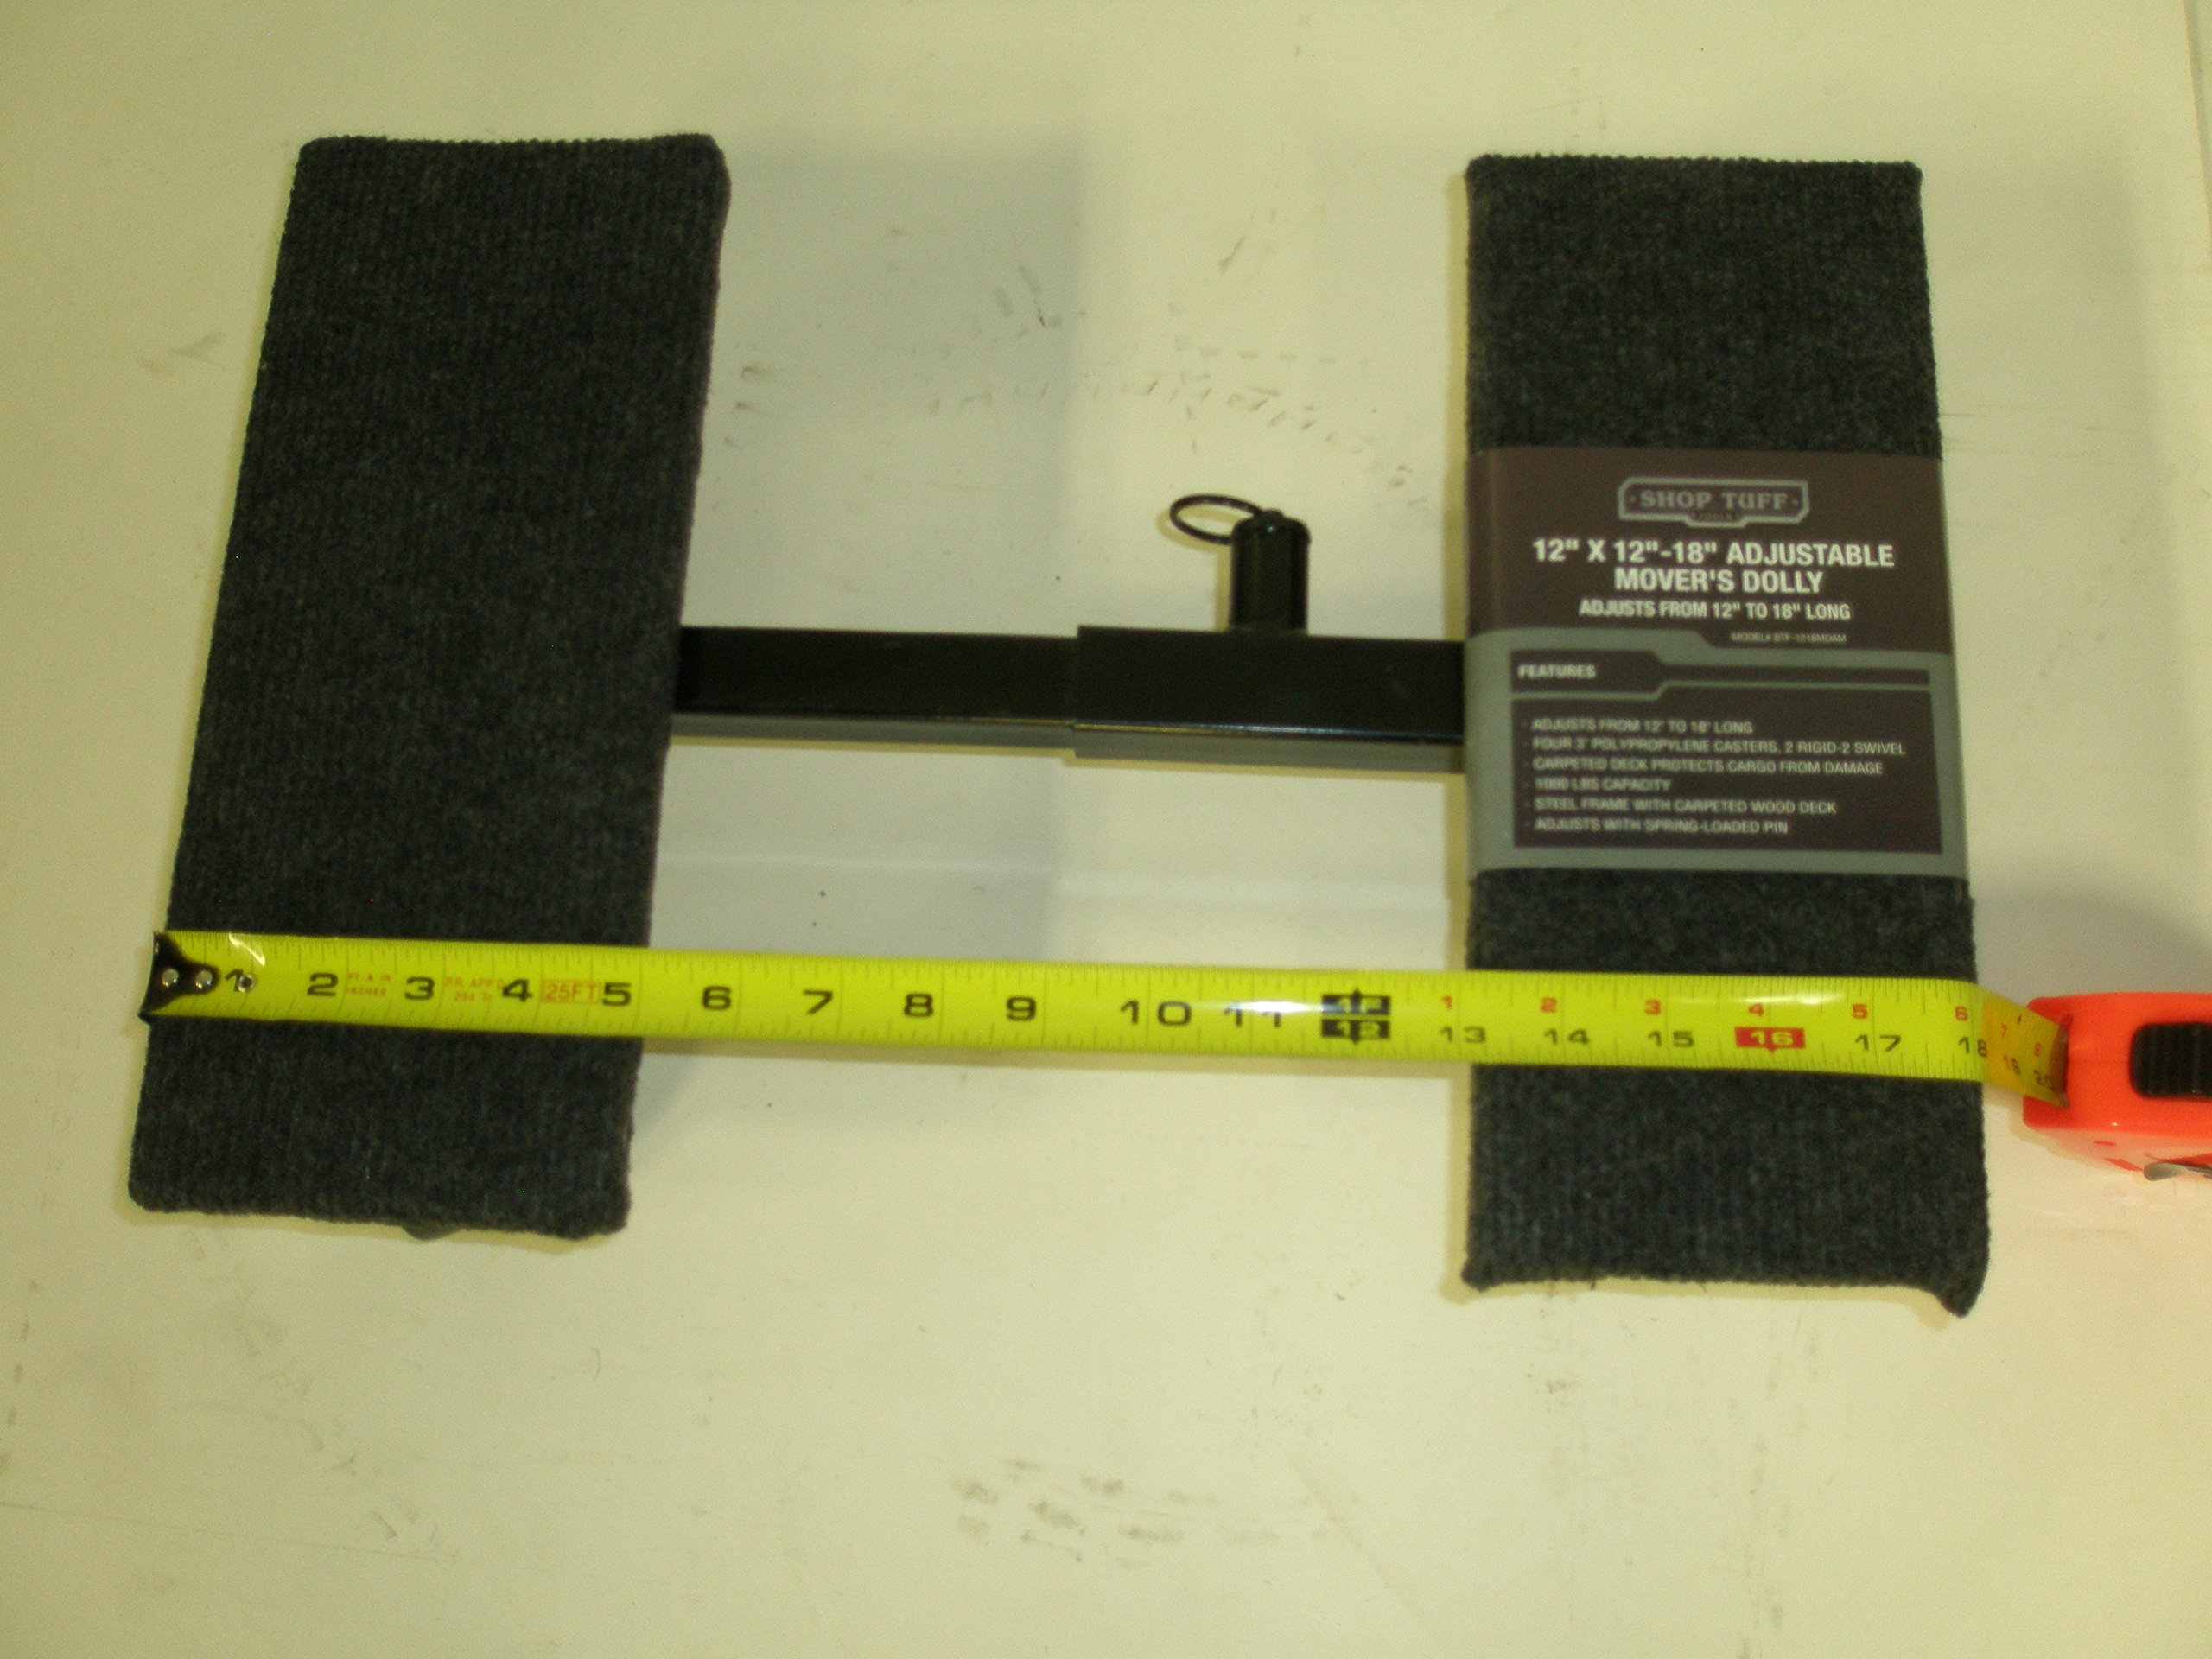 Shop Tuff STF-1218MDAM Adjustable Mover's Dolly, 12'' x 12'' x 18'' by Shop Tuff (Image #4)